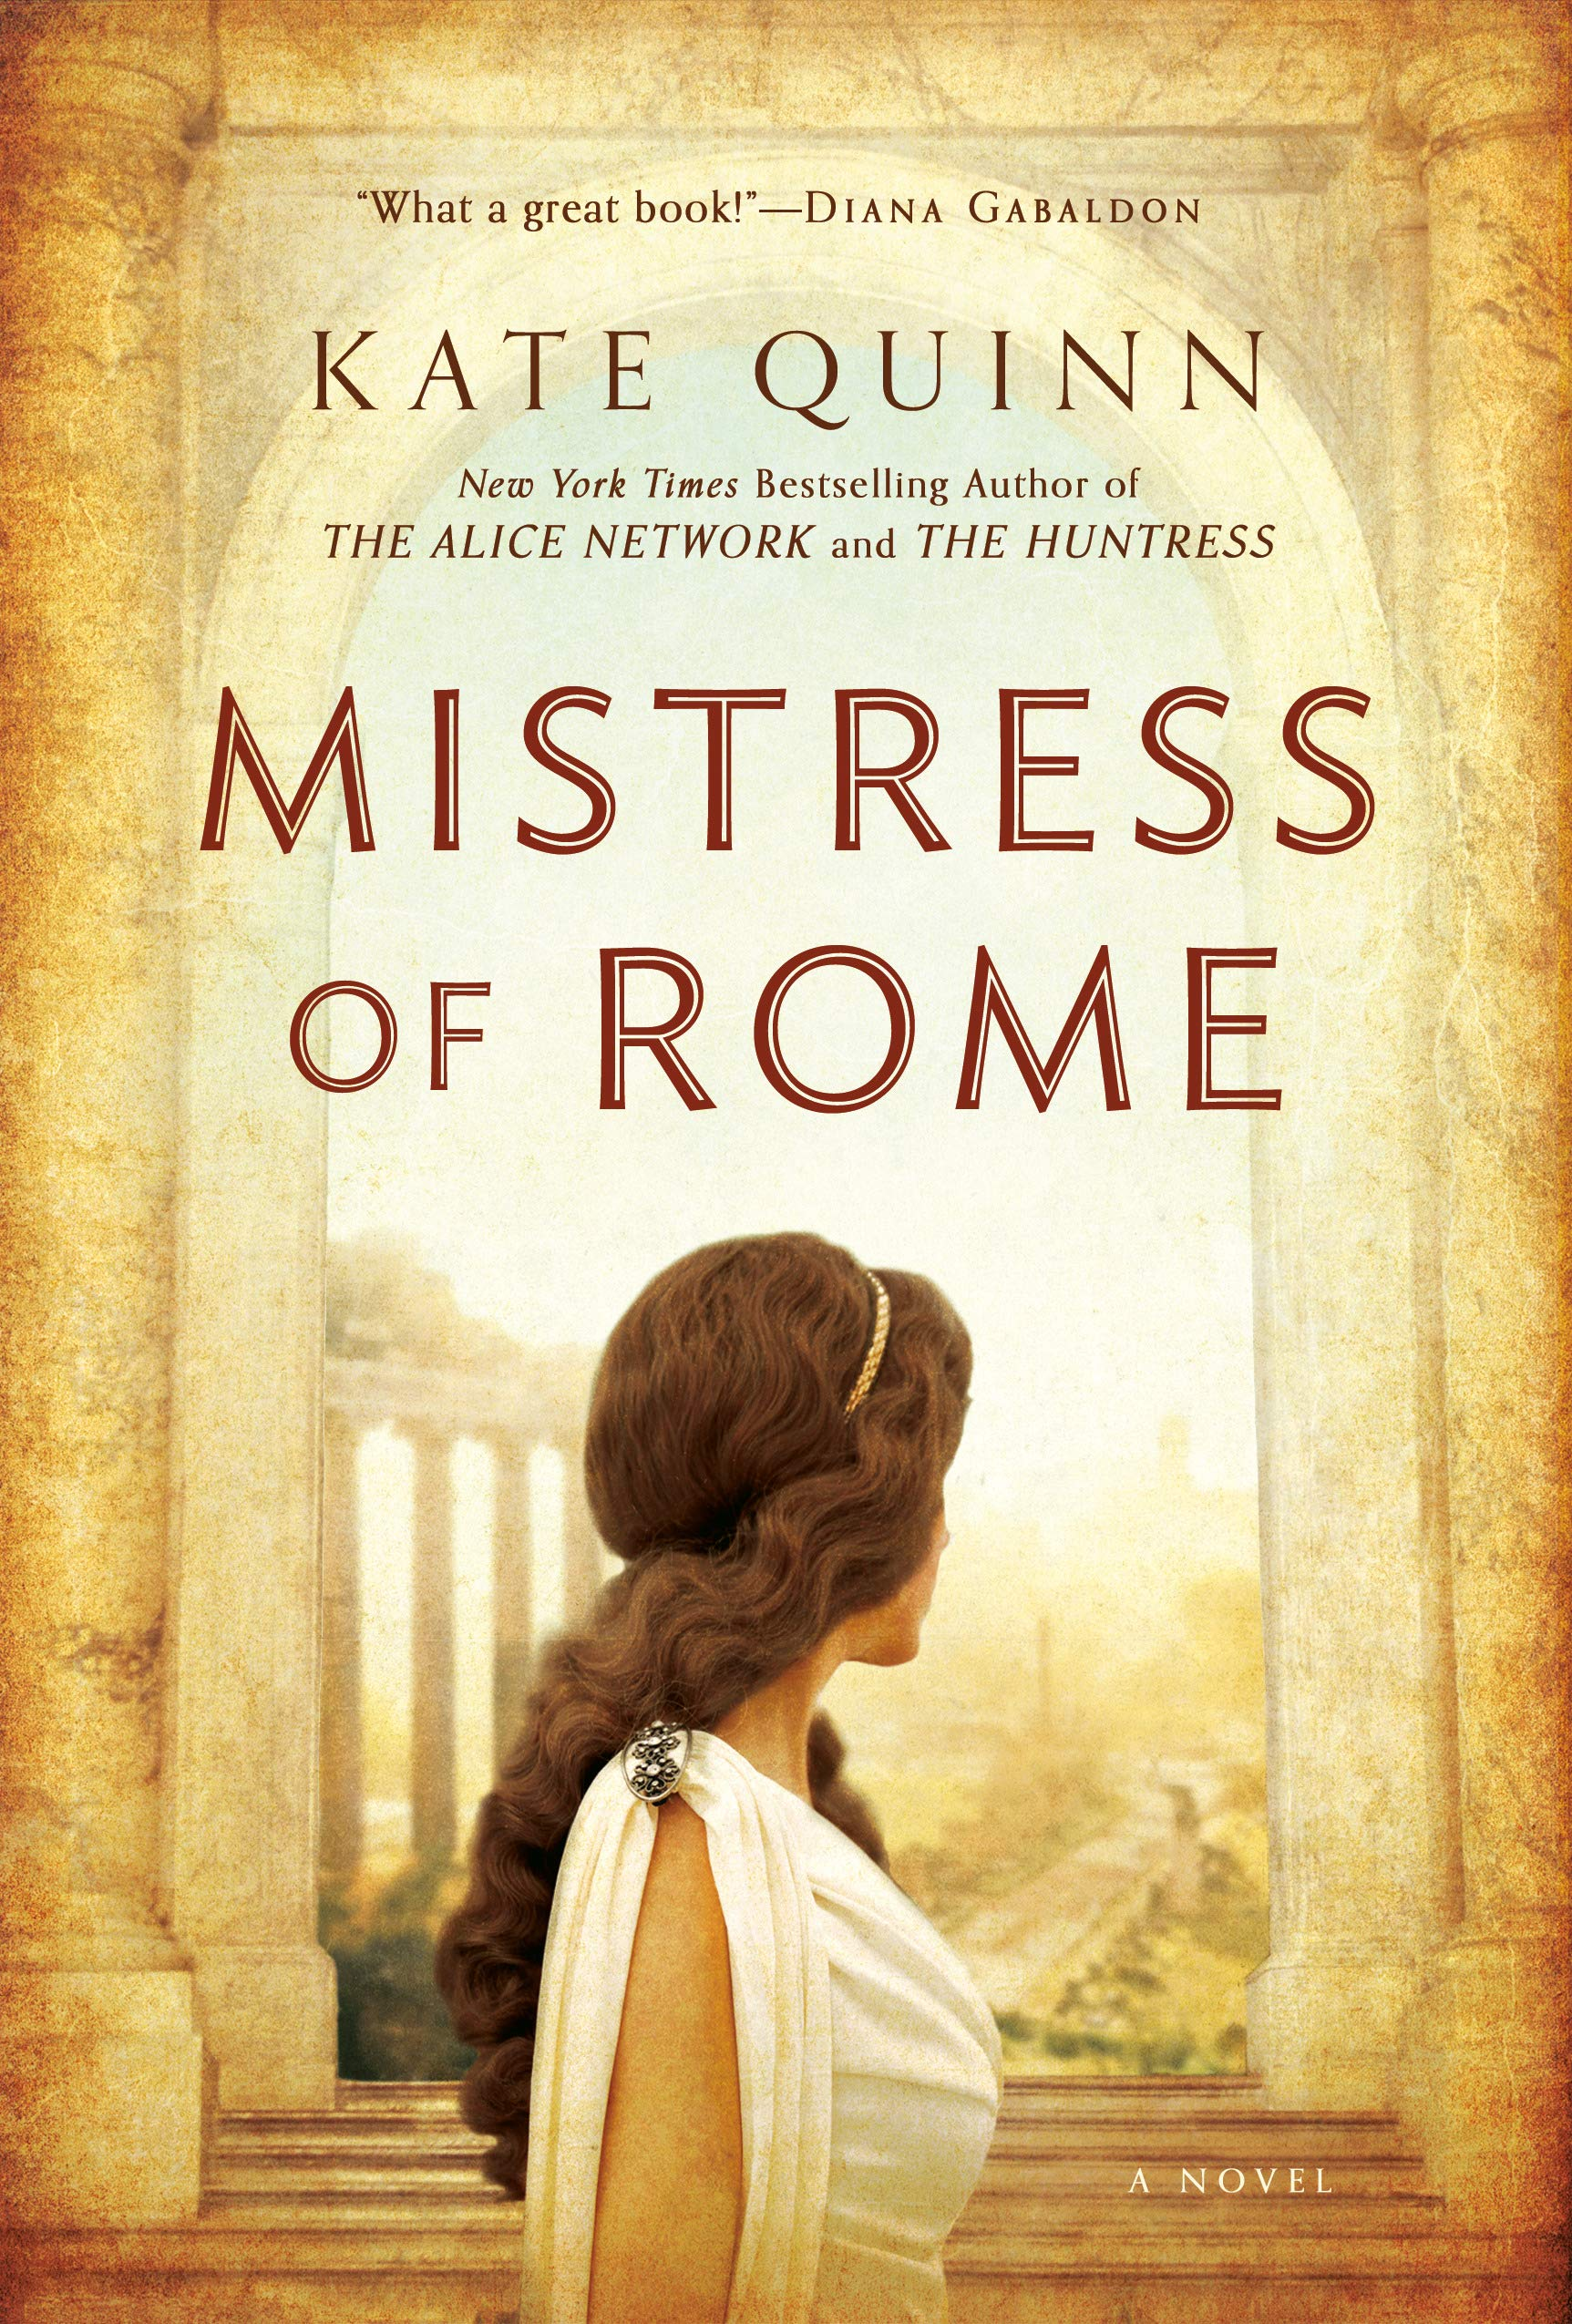 gustobeats book club rome and italy related books mistress of Rome a novel set in ancient Rome